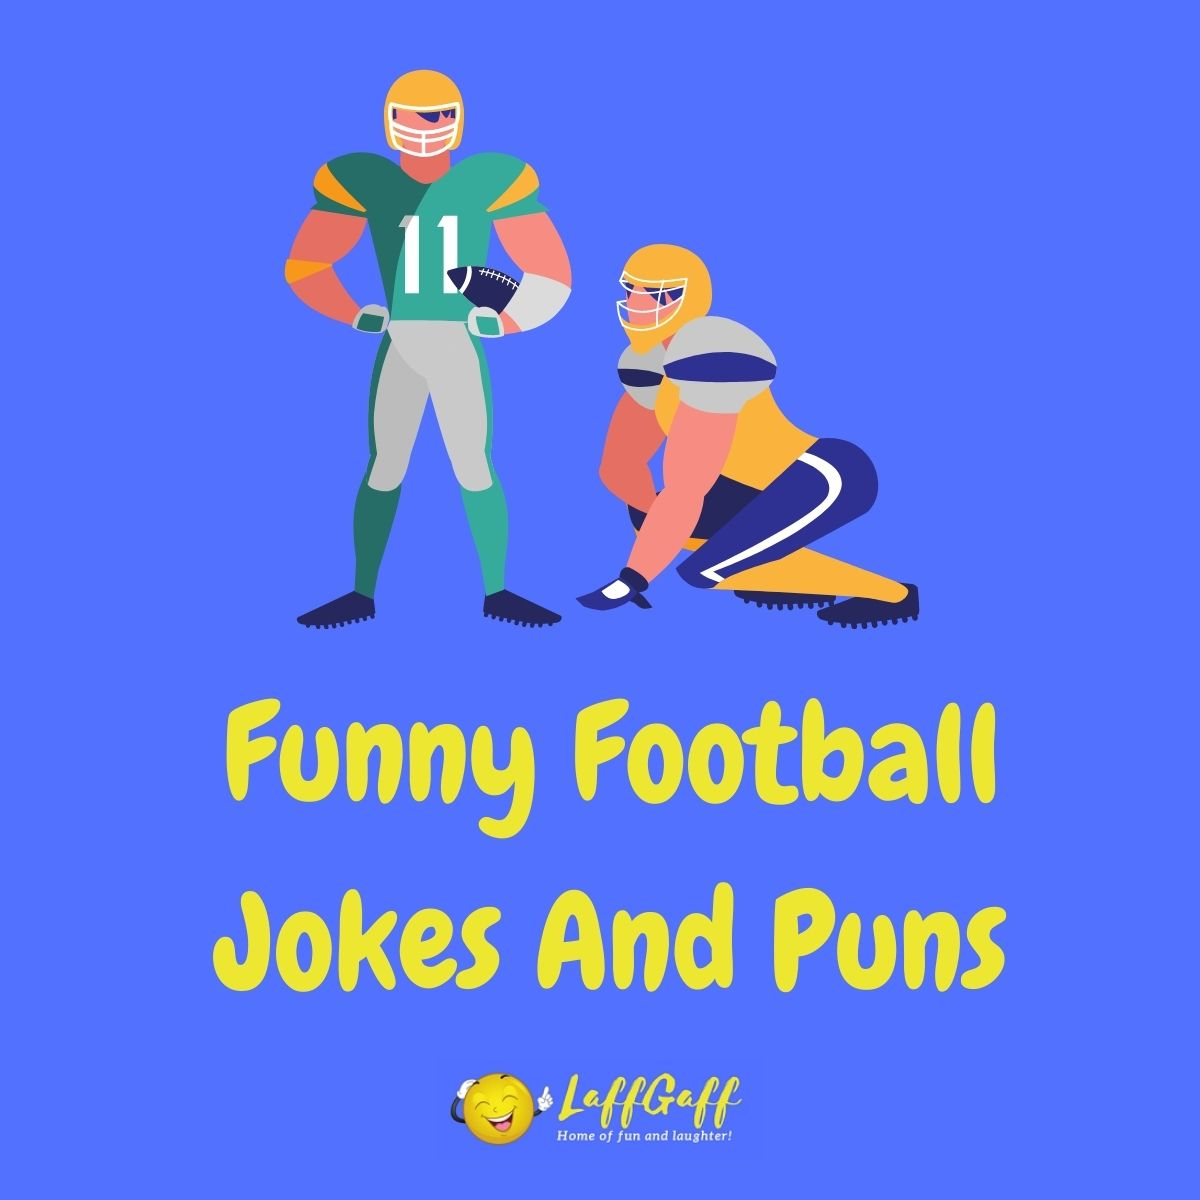 Featured image for a page of funny football jokes and puns.